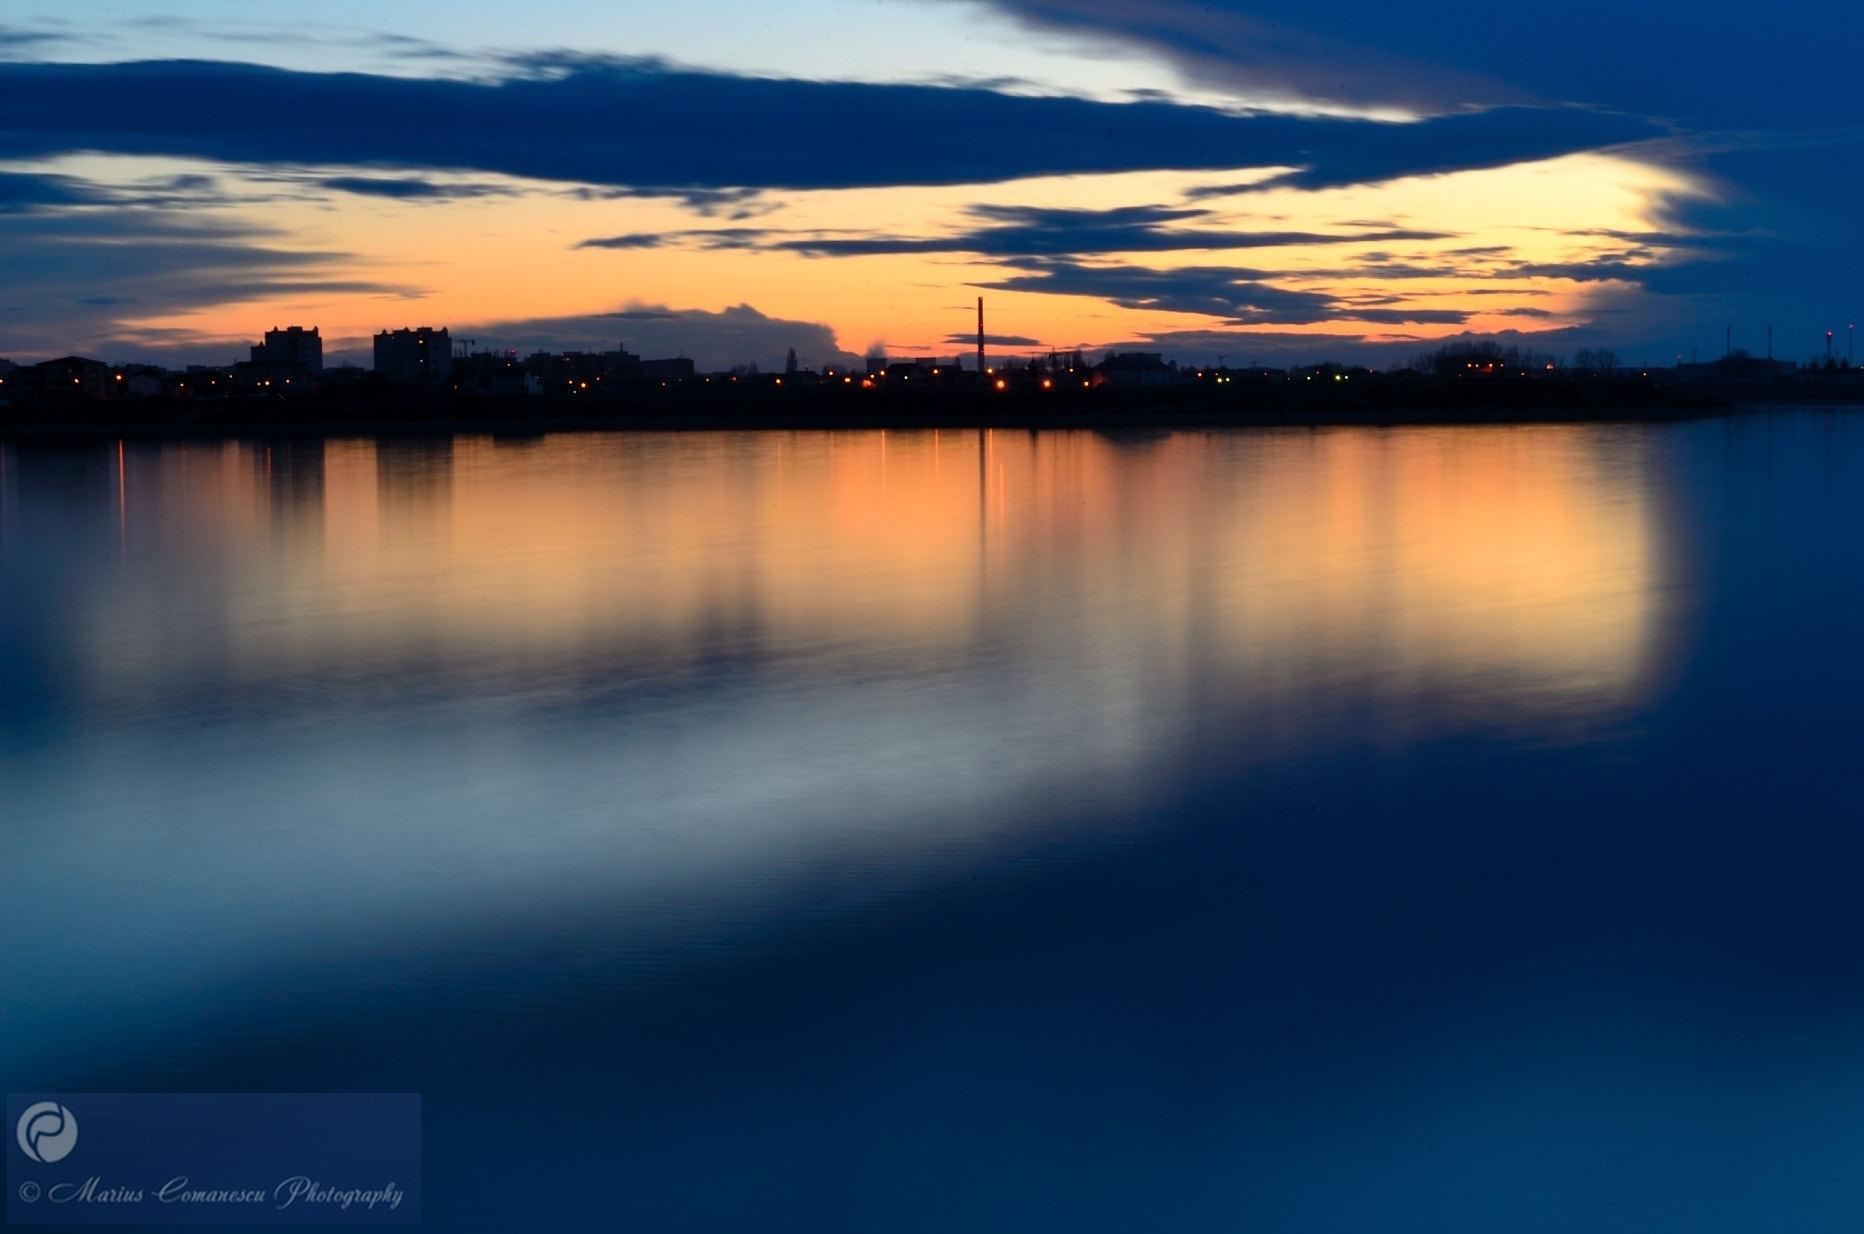 Photograph Sunset by Marius Comanescu on 500px